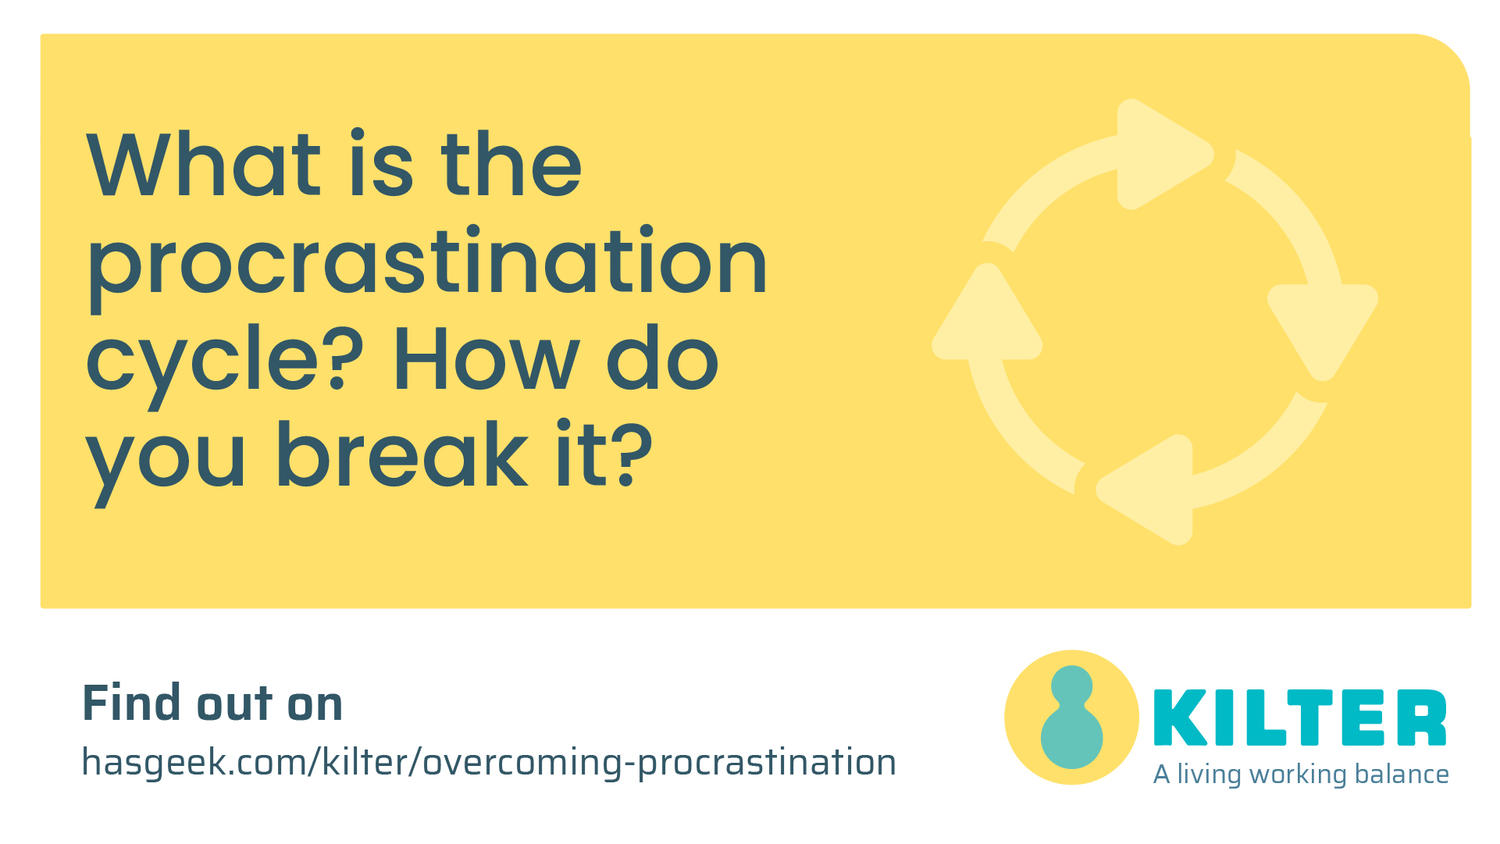 Tips and tricks to overcome procrastination